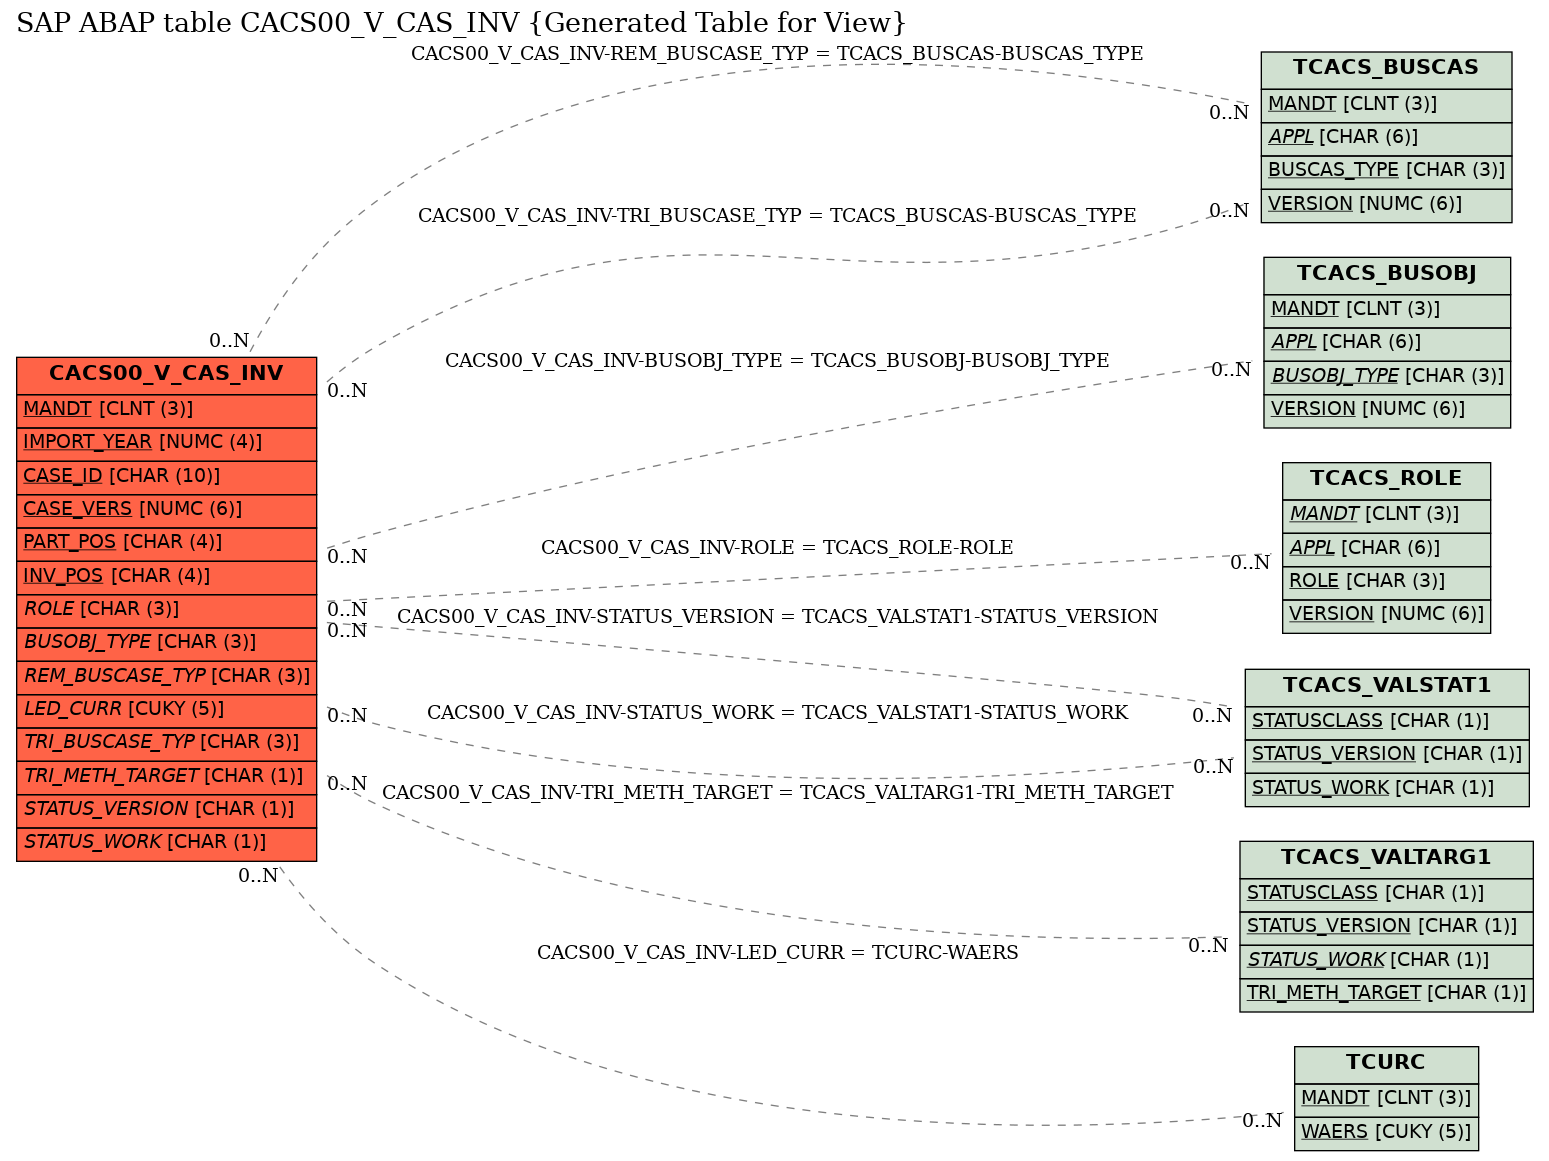 E-R Diagram for table CACS00_V_CAS_INV (Generated Table for View)